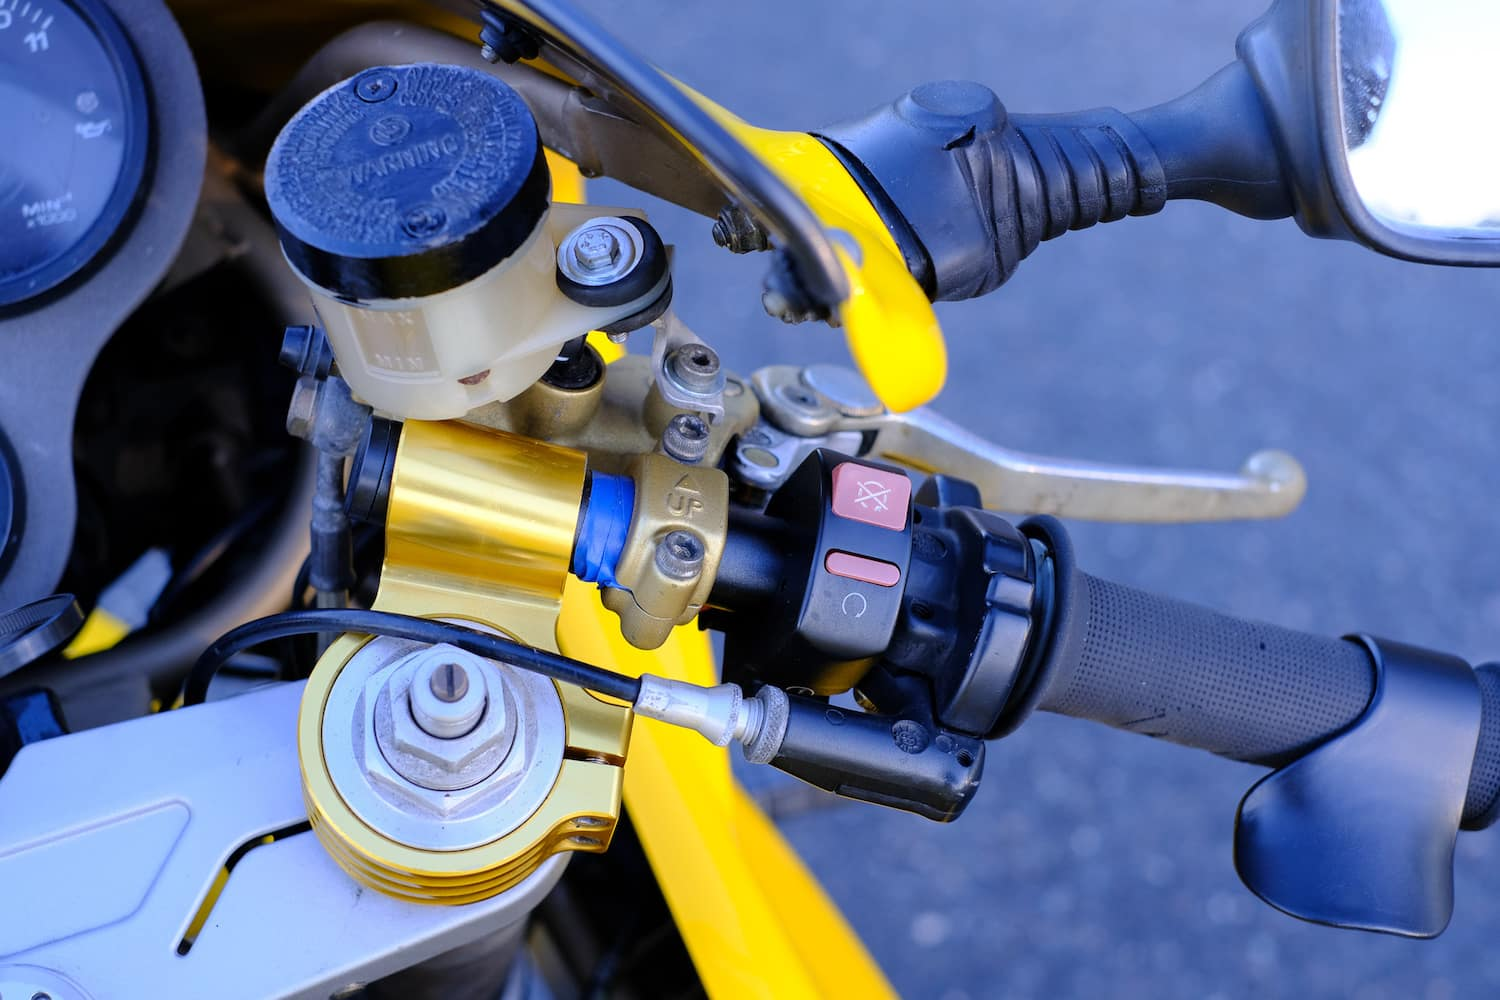 Controls on the Ducati 900SS